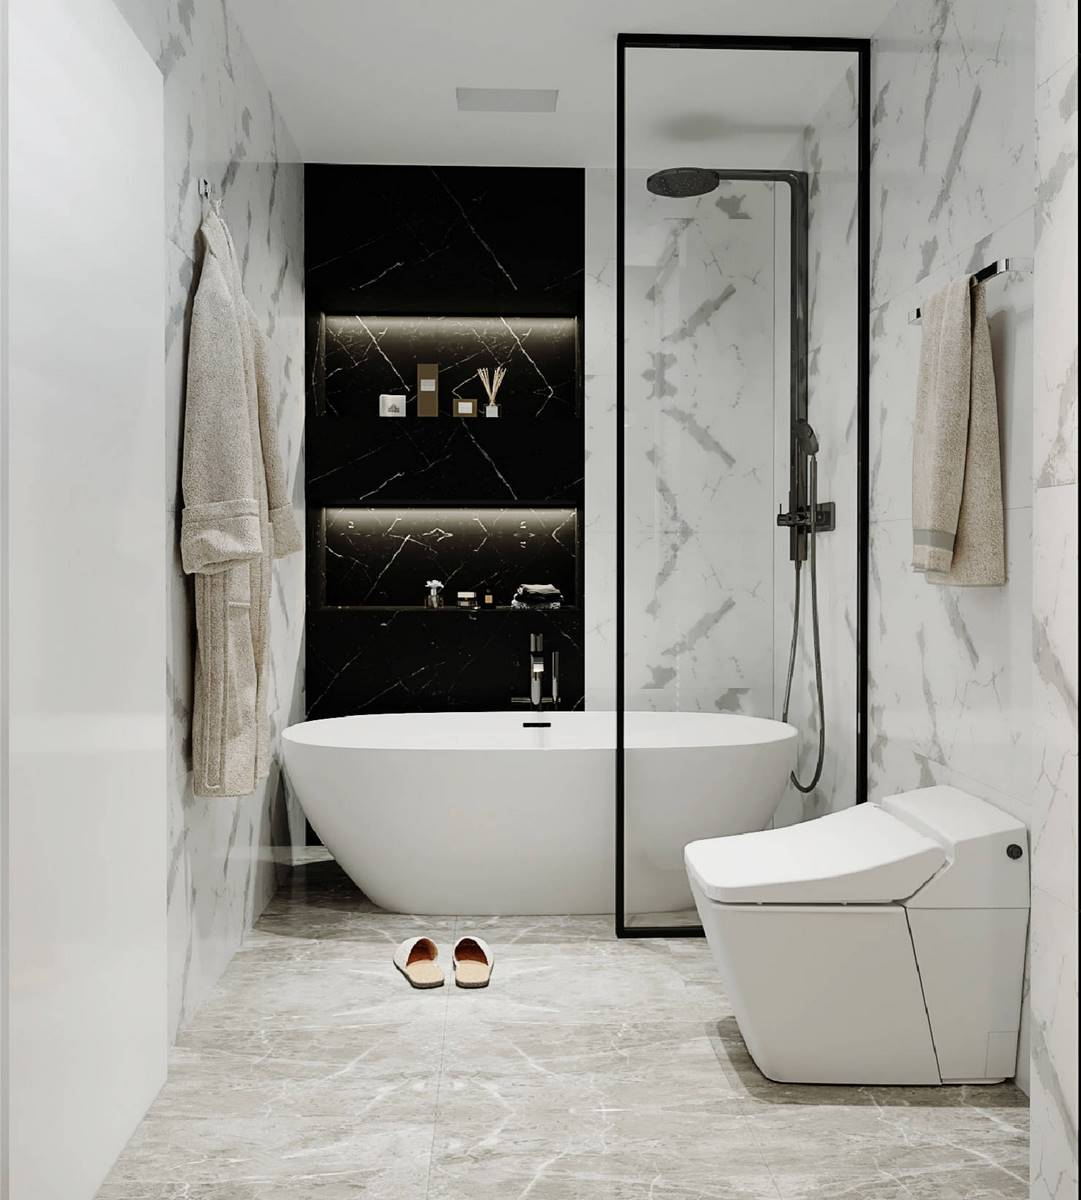 This bathroom is decorated in black and white. The black cabinets contrast beautifully with the white walls, ceiling, floor, freestanding bathtub and one-piece toilet, evoking a feeling of relaxation, peace, warmth, and comfort. Despite the small size of the bathroom, it does not look cramped thanks to the right colors, as well as the small amount of the most important pieces of furniture and sanitary engineering. The Grandeur Hills Group design studio is always pleased to help you with designing your bathroom so that it may completely meet your wishes, tastes, and needs.